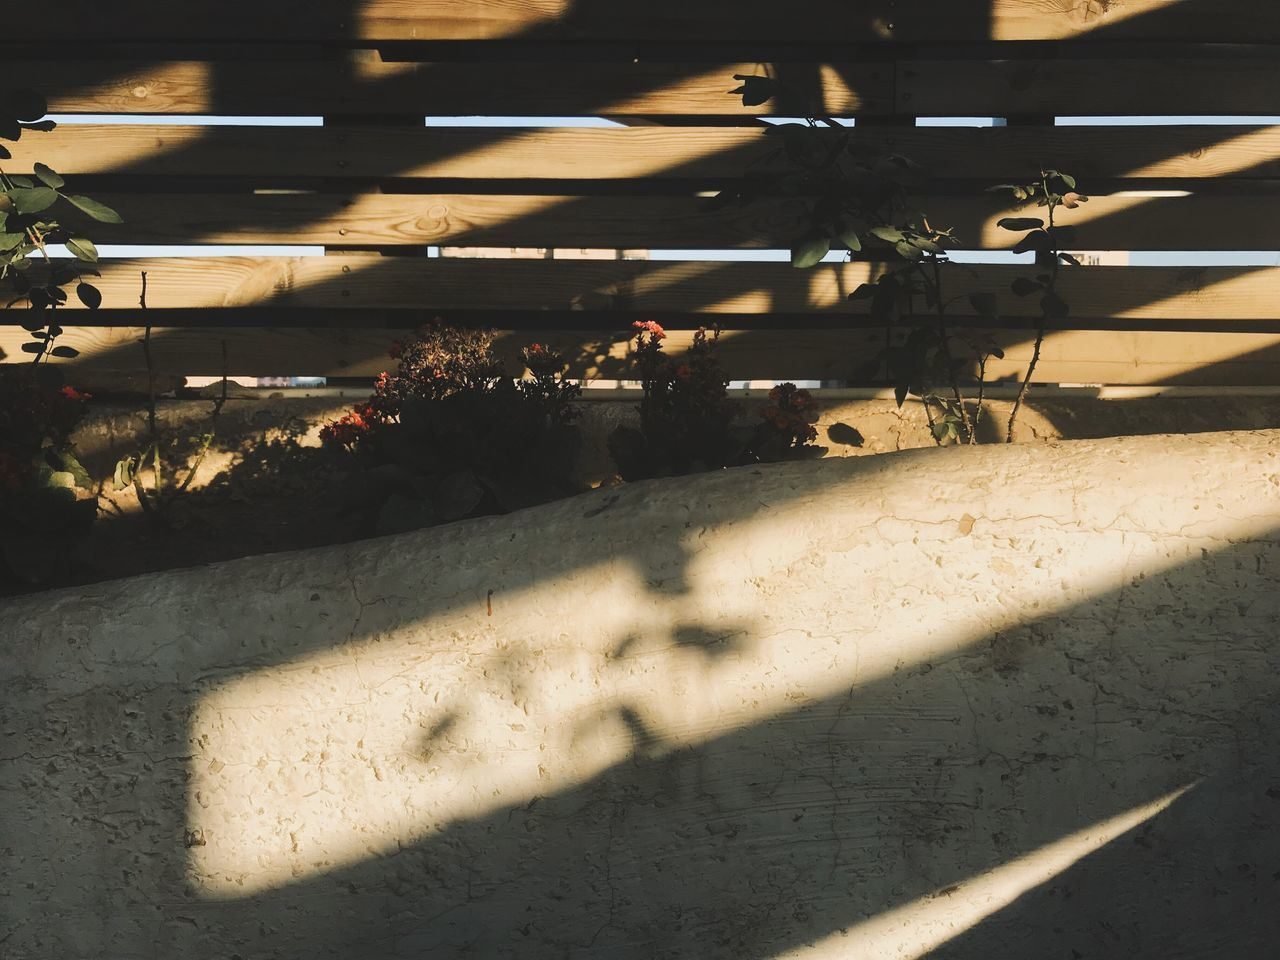 sunlight, shadow, nature, architecture, day, built structure, high angle view, no people, outdoors, city, plant, standing, wall - building feature, occupation, window, focus on shadow